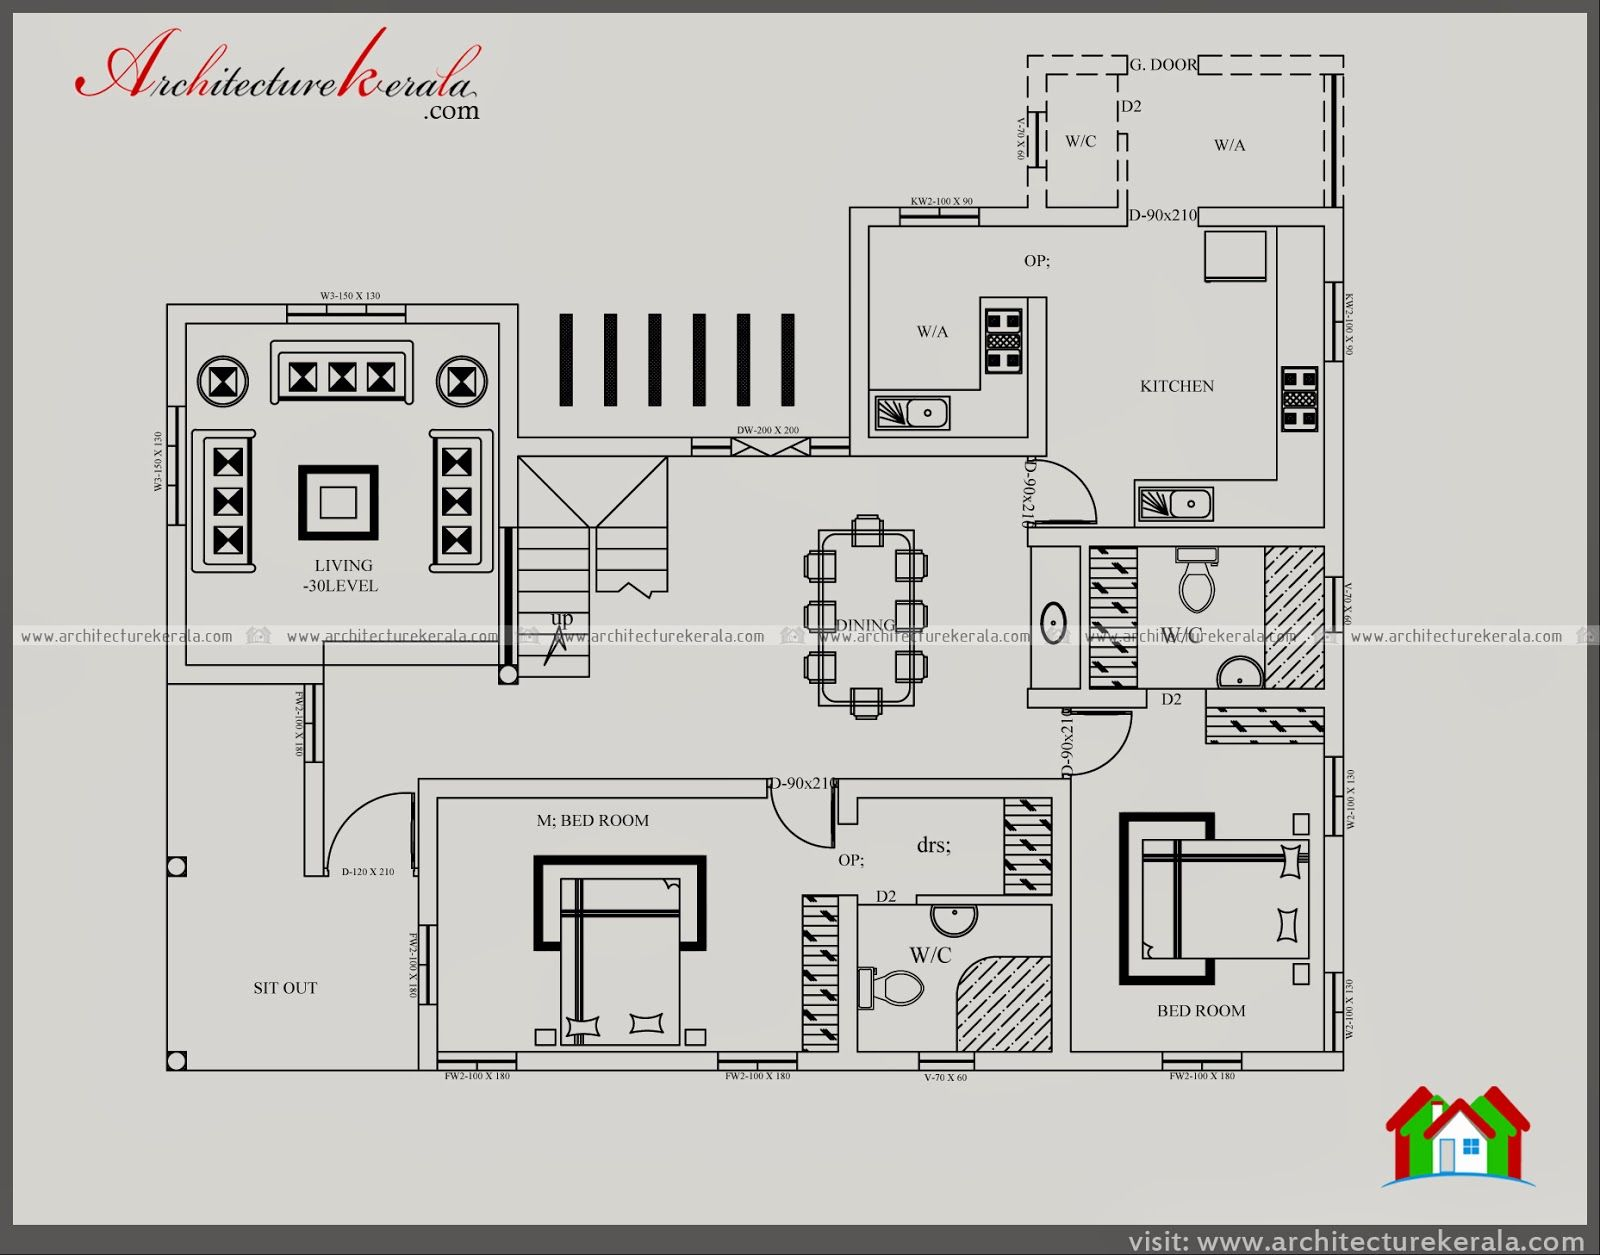 3000 Square Feet House Plan And Elevation Five Bedroom House Plan Image How To Plan House Blueprints House Plans